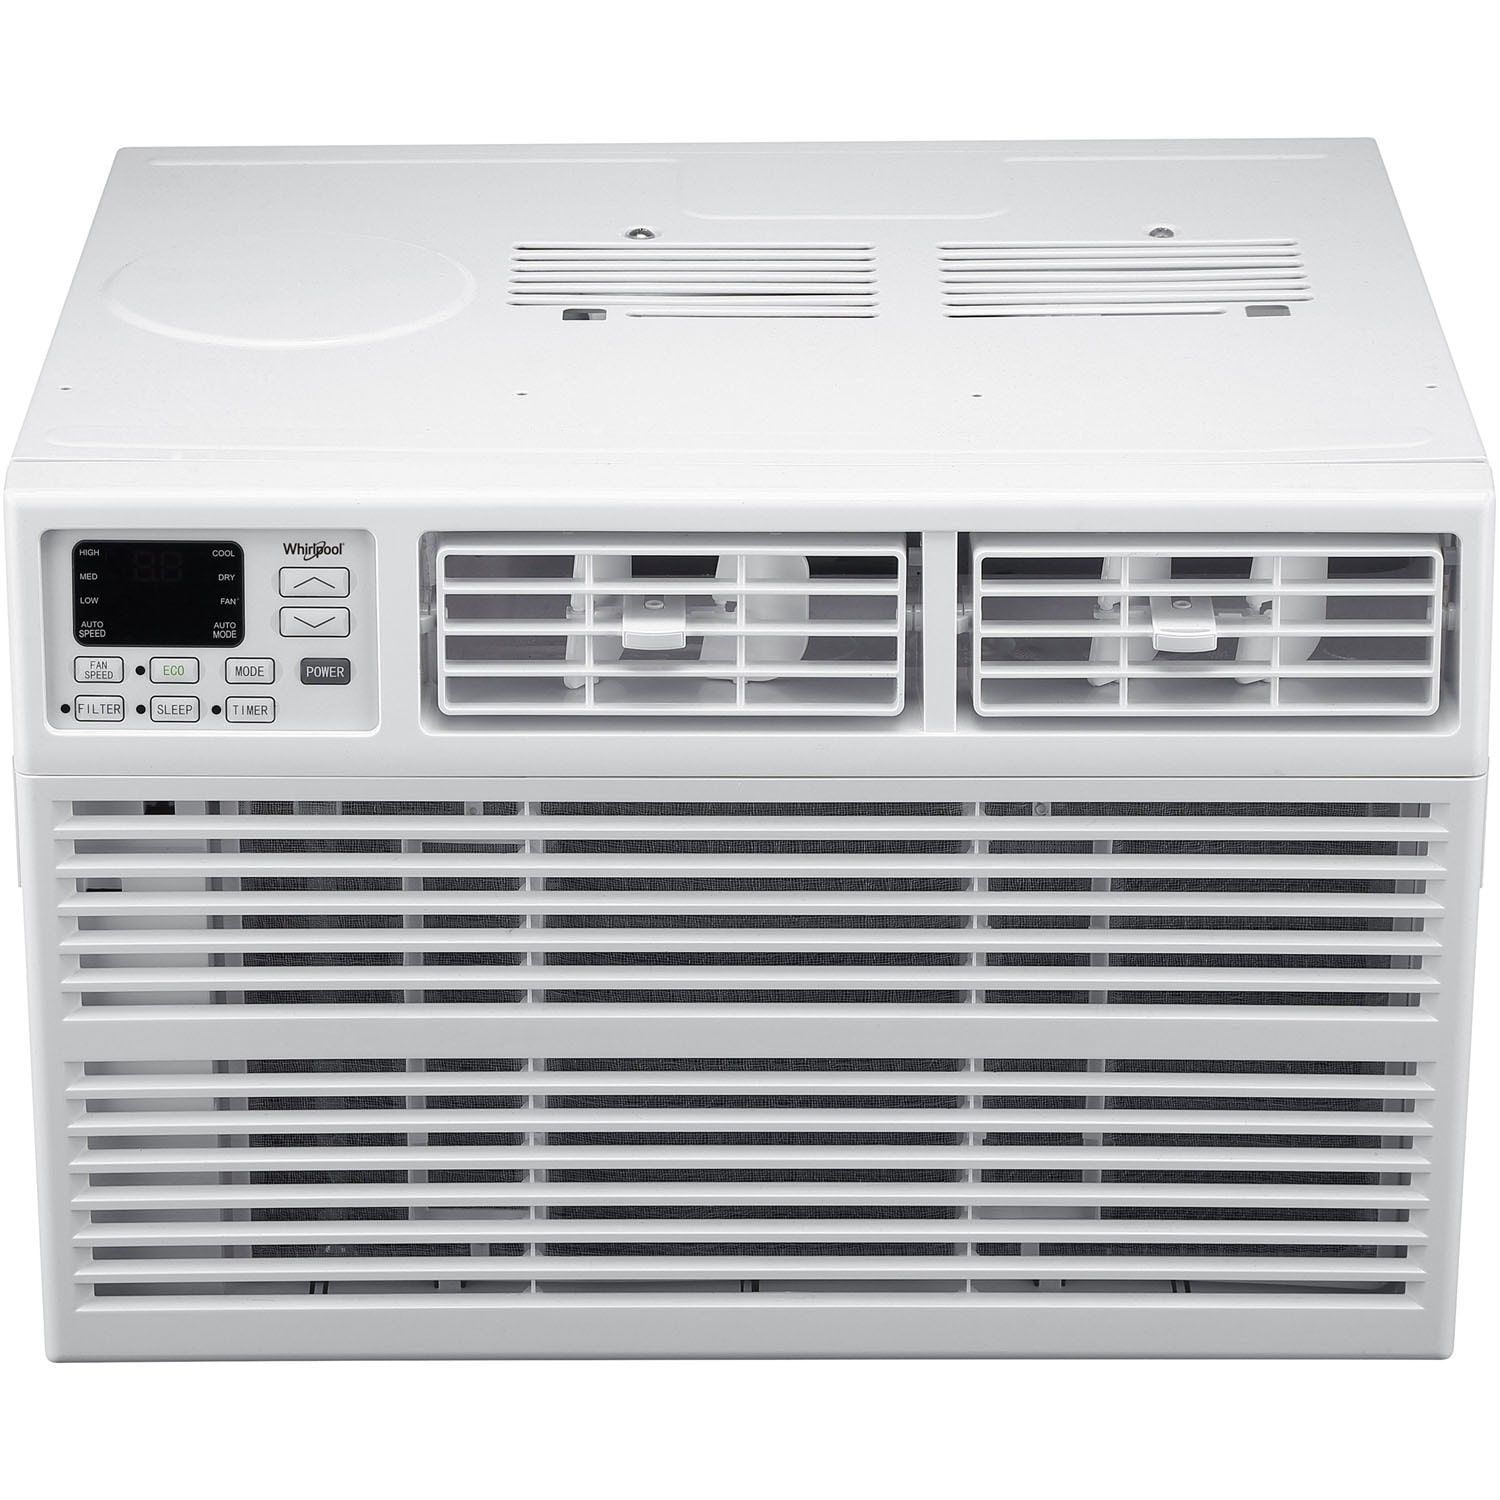 Whirlpool 10 000 Btu Window Ac With Electronic Controls White Window Air Conditioner Best Window Air Conditioner